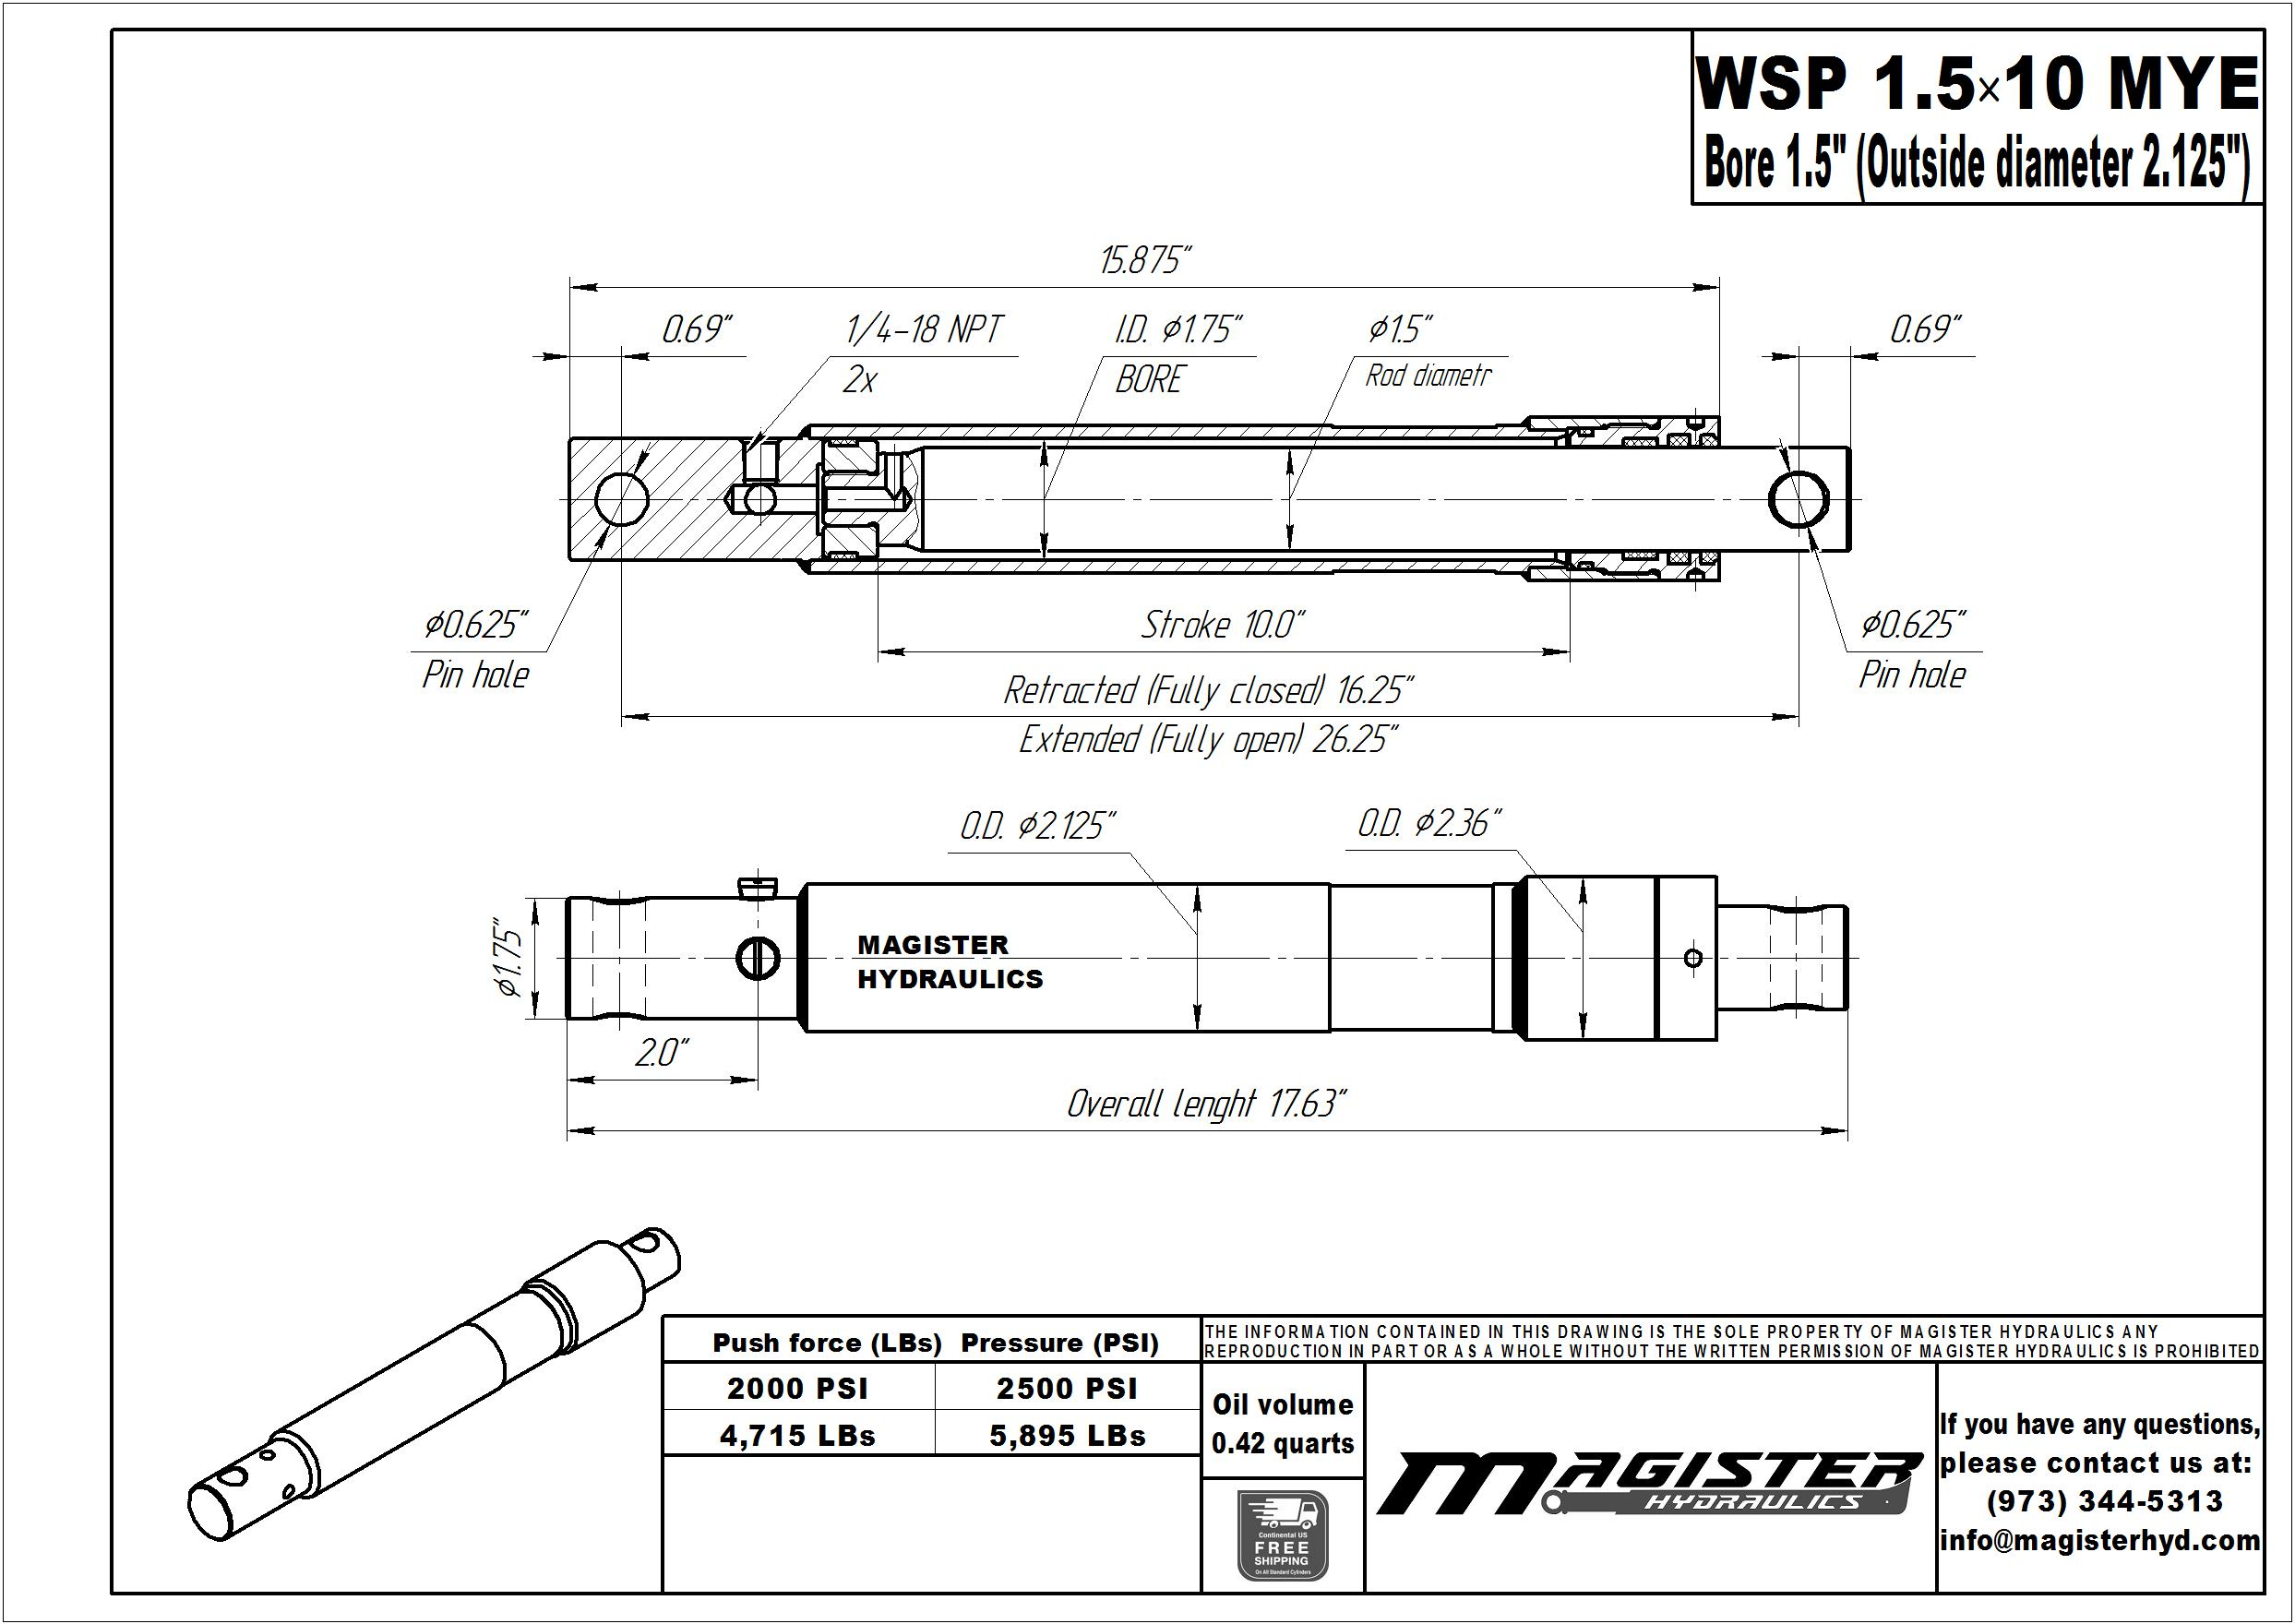 1.5 bore x 10 stroke hydraulic cylinder Meyers, welded snow plow single acting cylinder | Magister Hydraulics